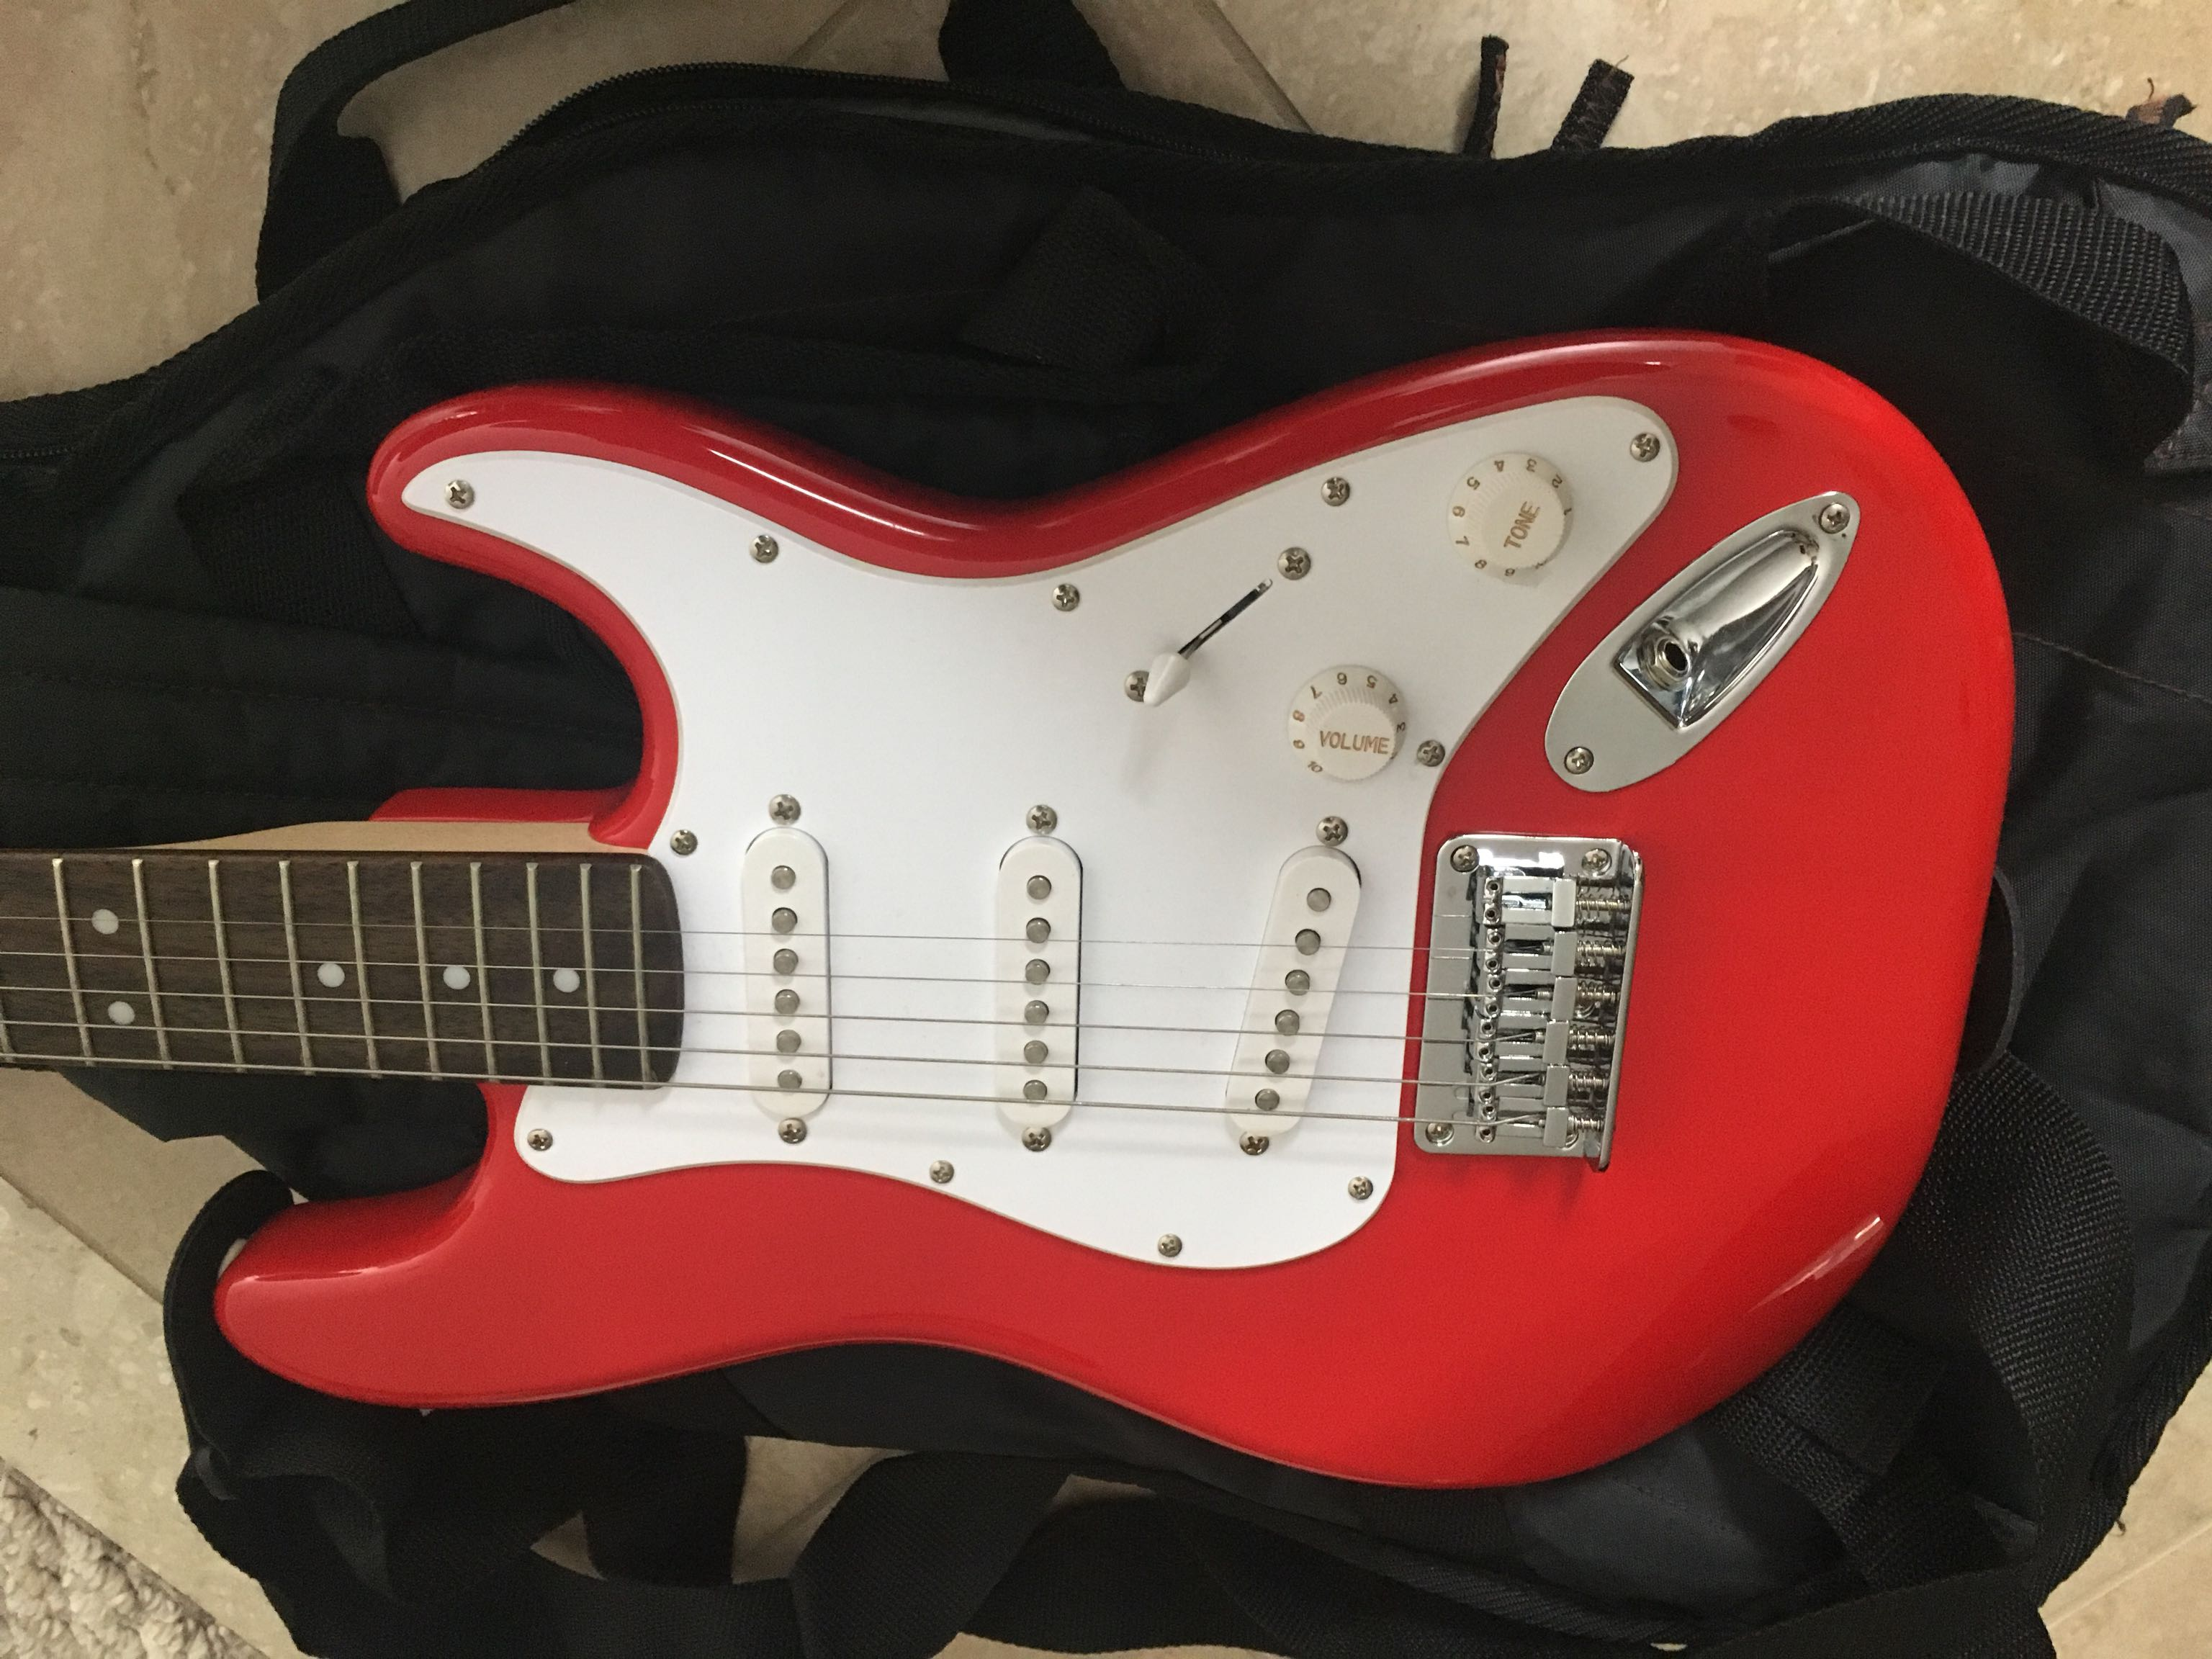 Squier Mini Electric Guitar by Fender